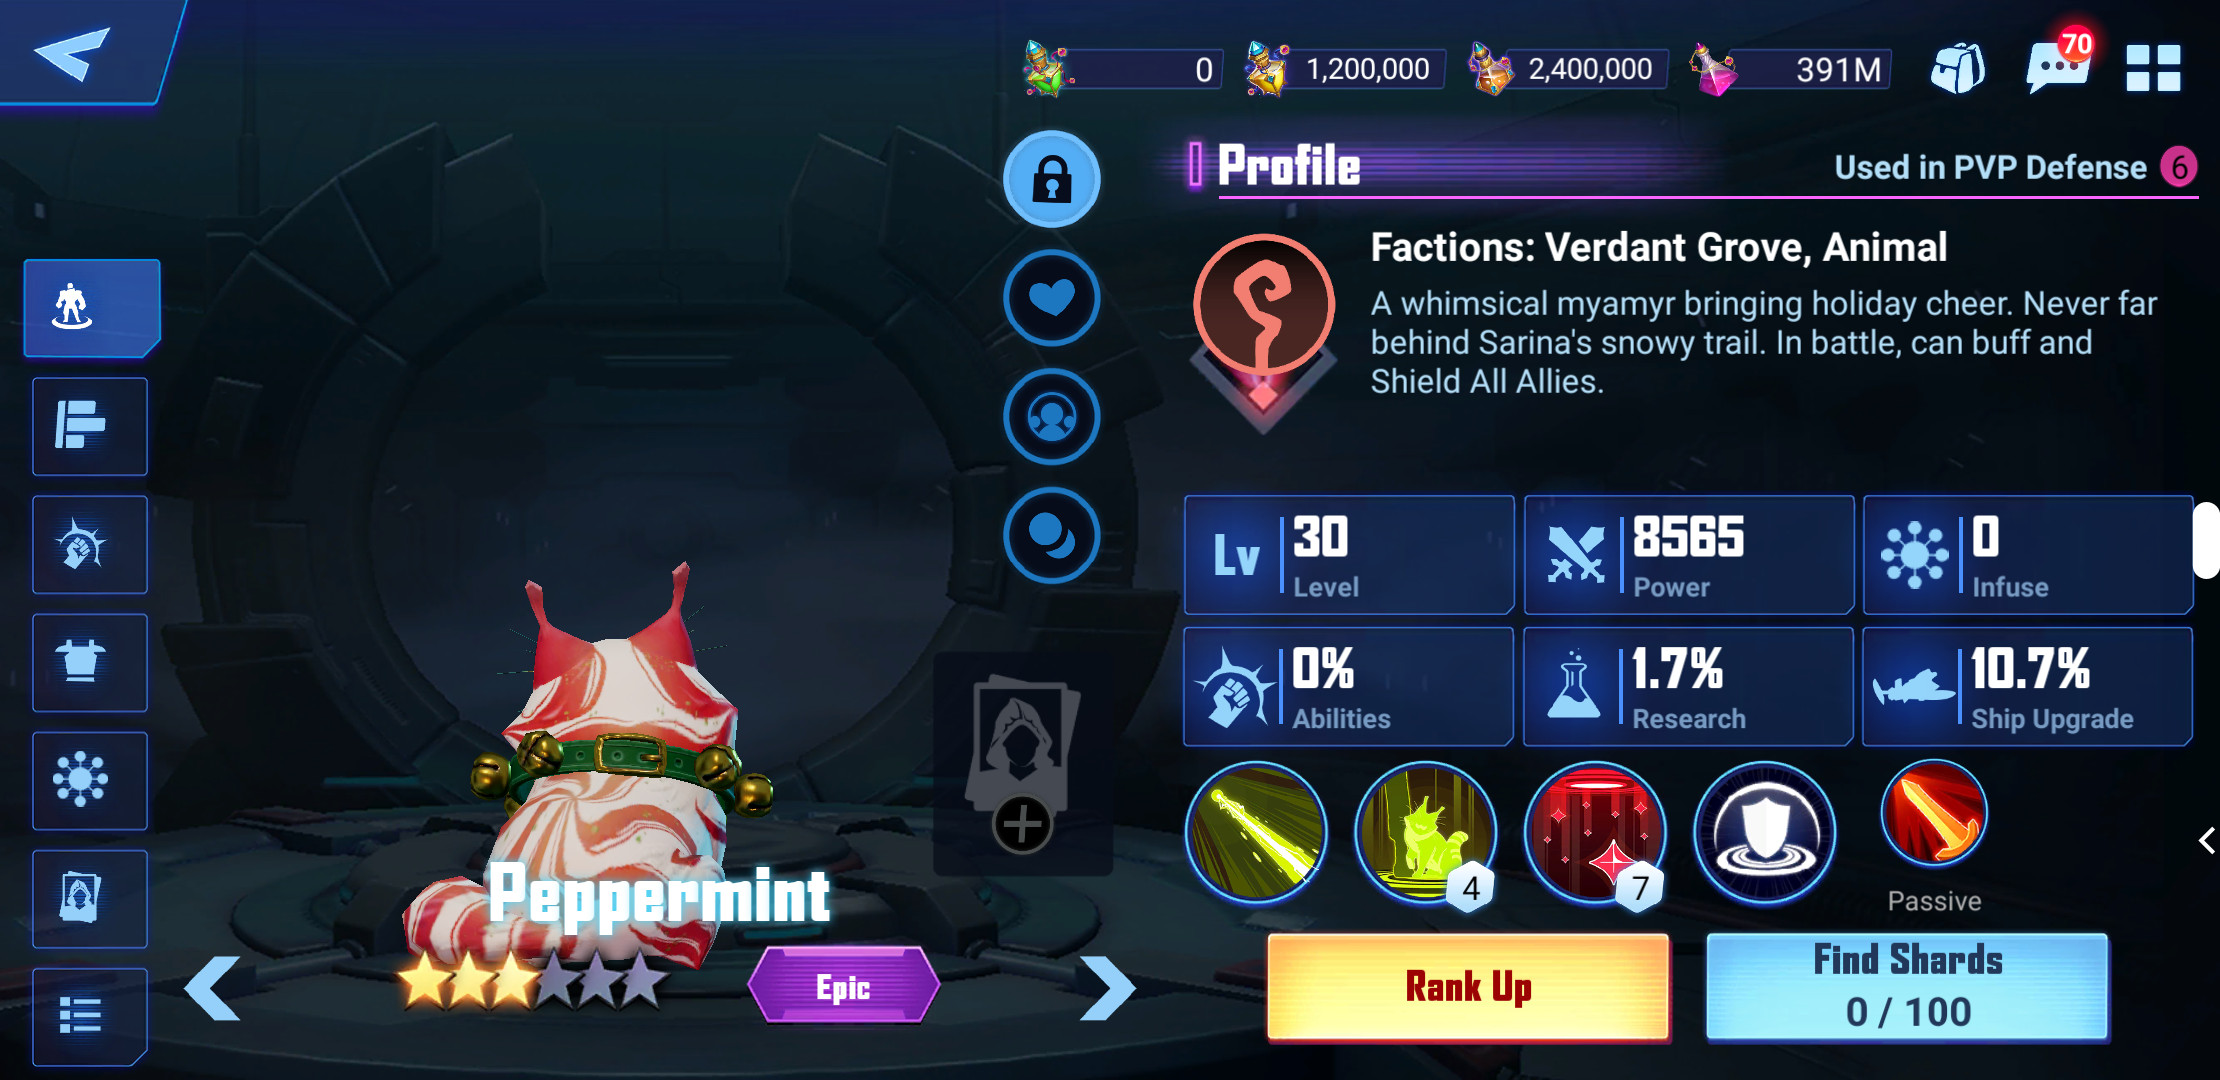 Peppermint in-game character profile